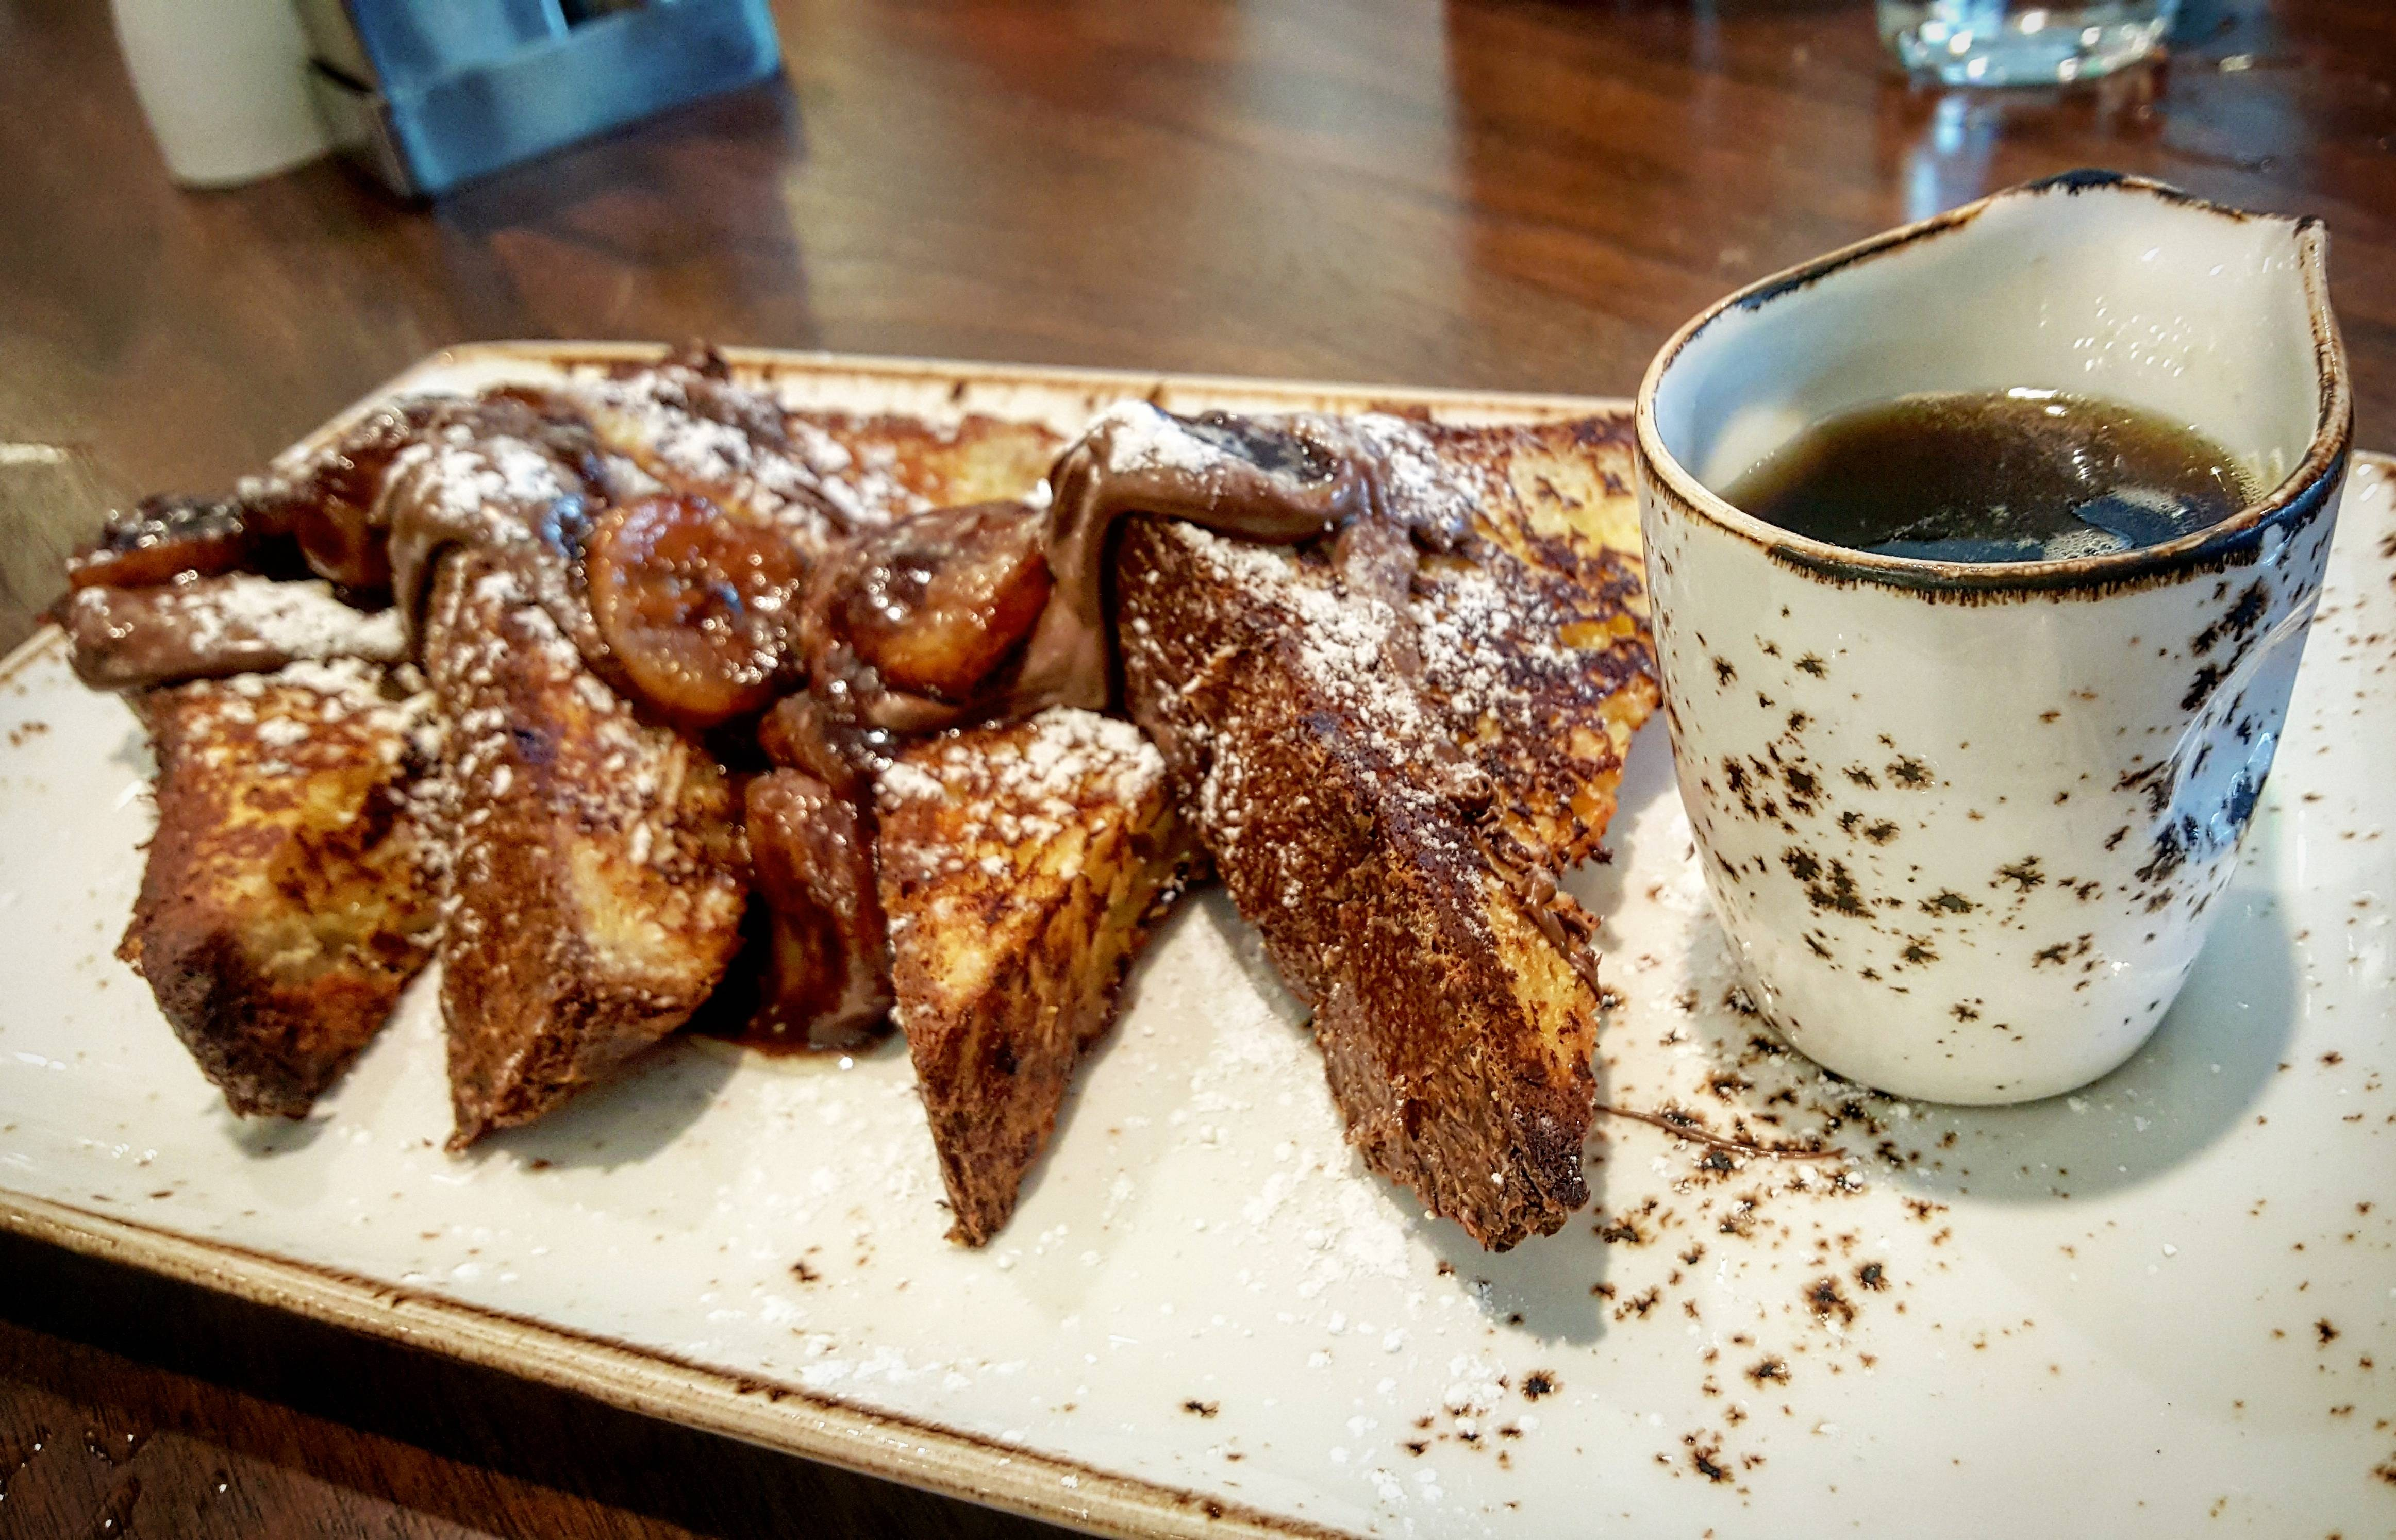 Nutella French toast at Outlook Kitchen and Bar